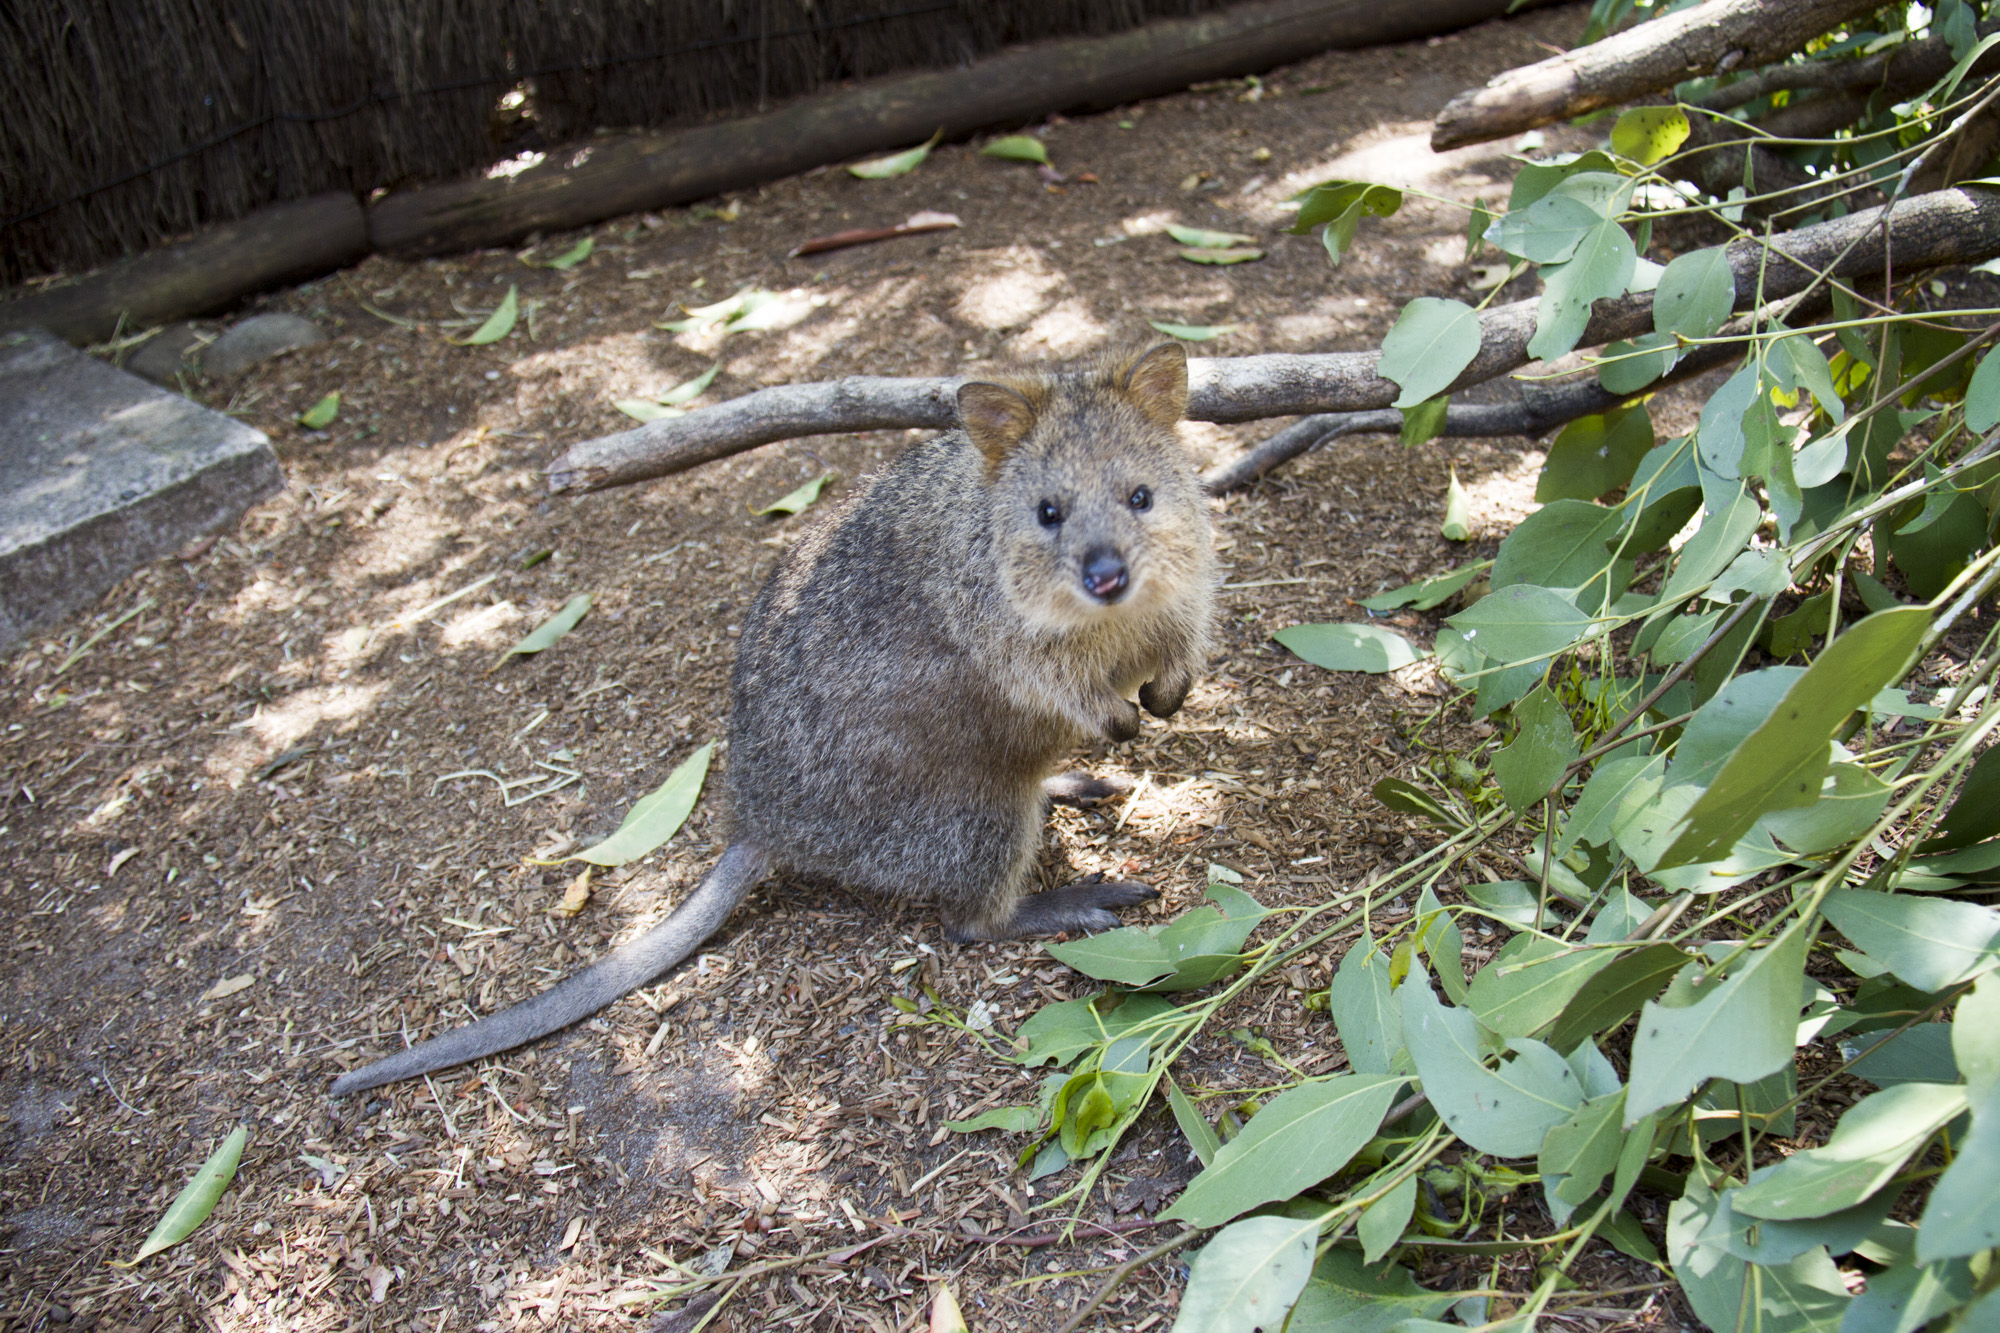 Quokkas curiously looking at the camera!